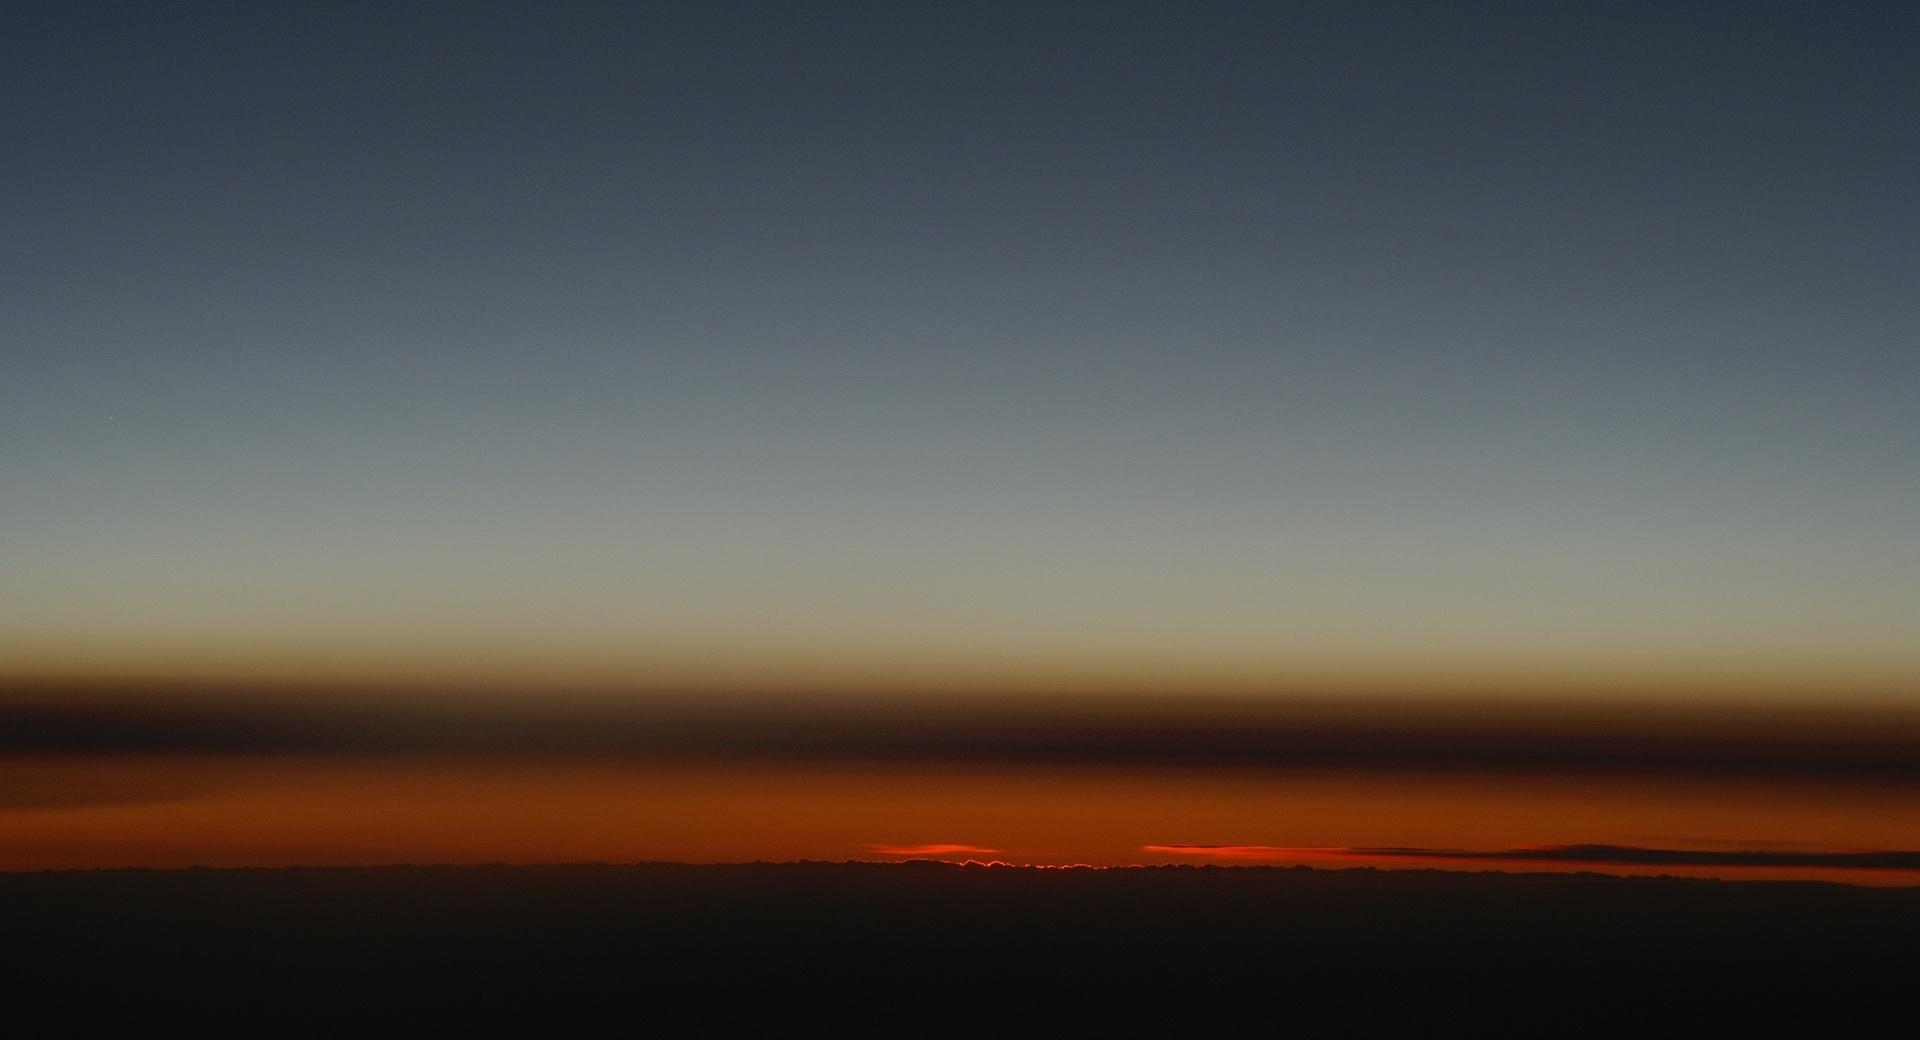 Sunset From Airplane wallpapers HD quality